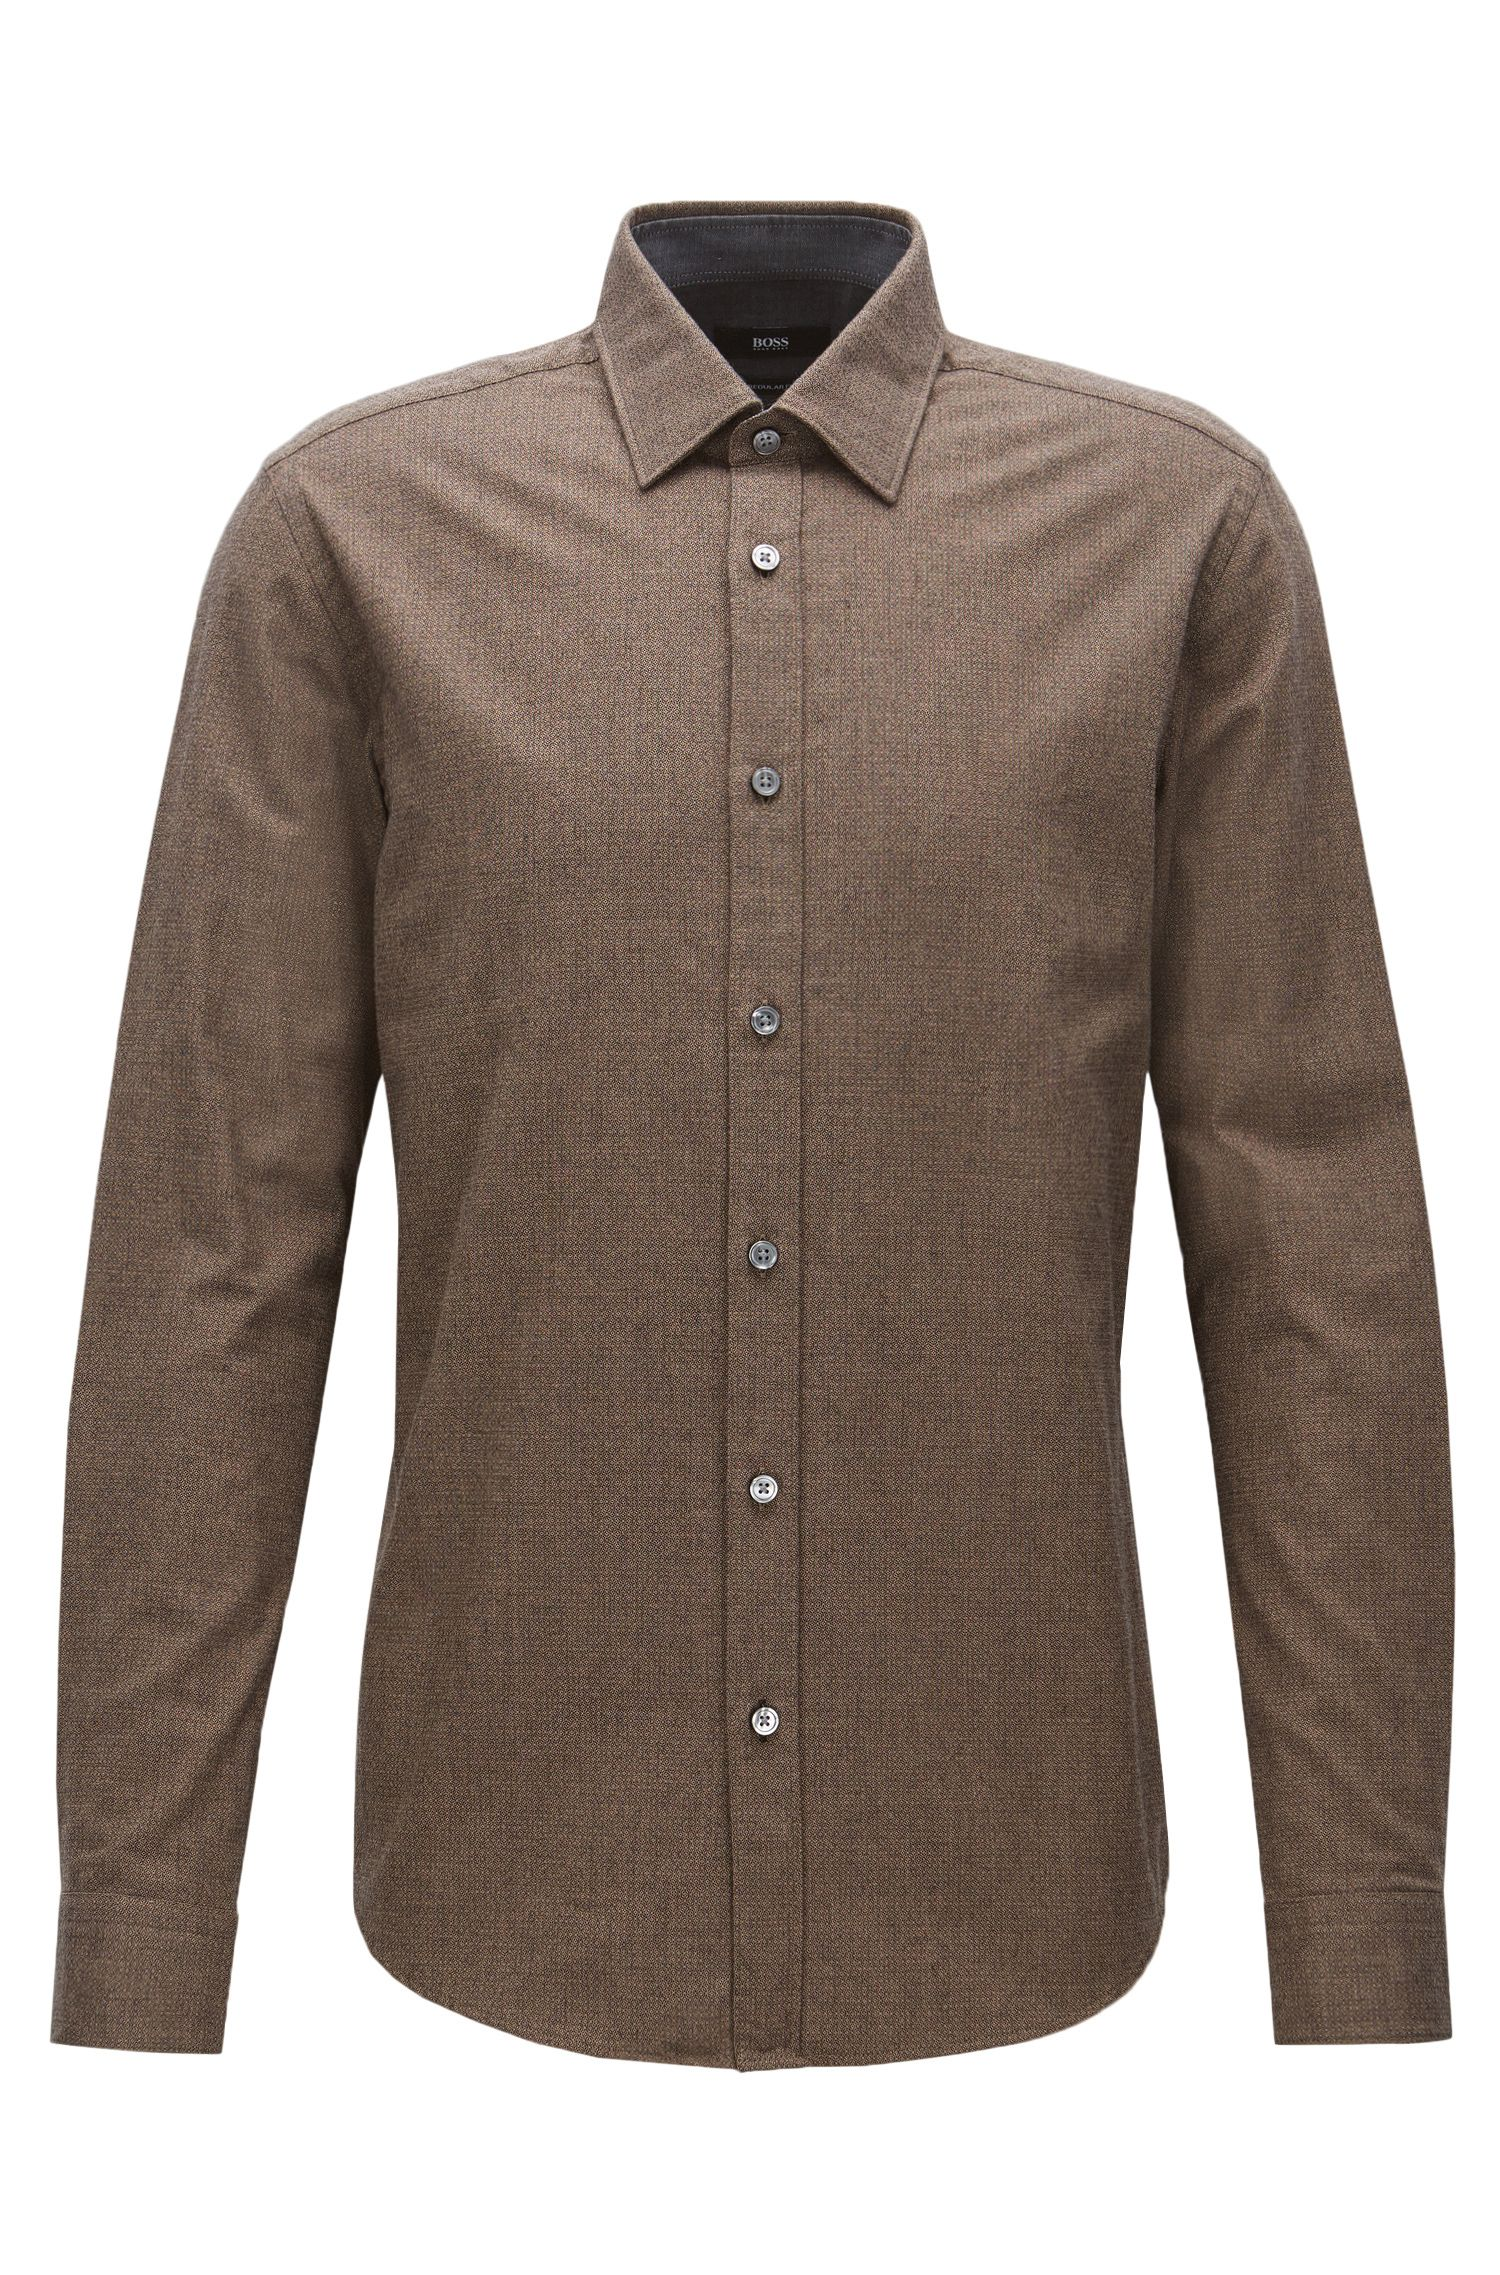 'Lukas' | Regular Fit, Micro-Pattern Cotton Flannel Button Down Shirt